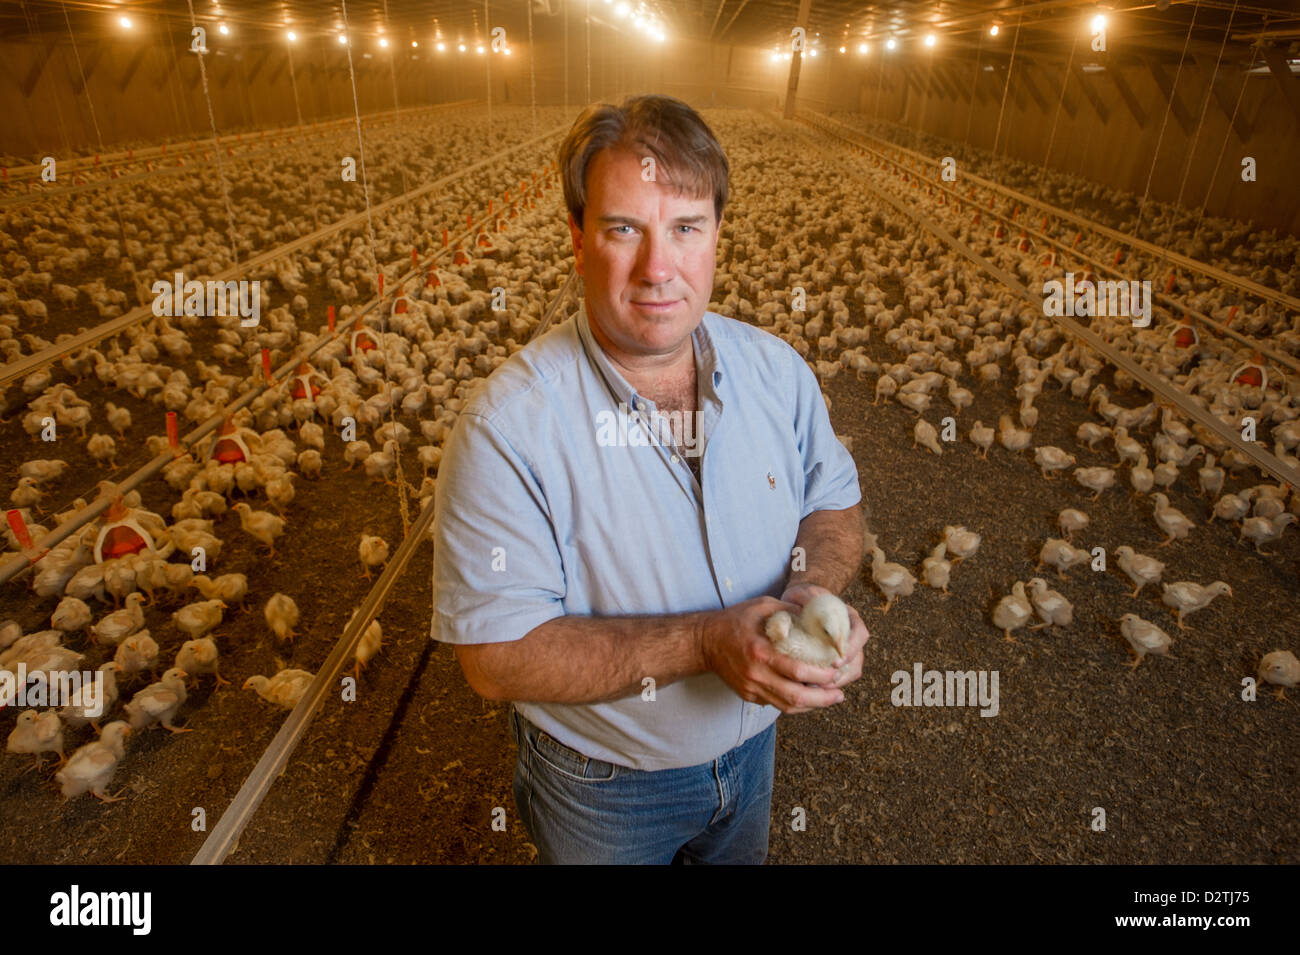 Maryland poultry farmer - Stock Image